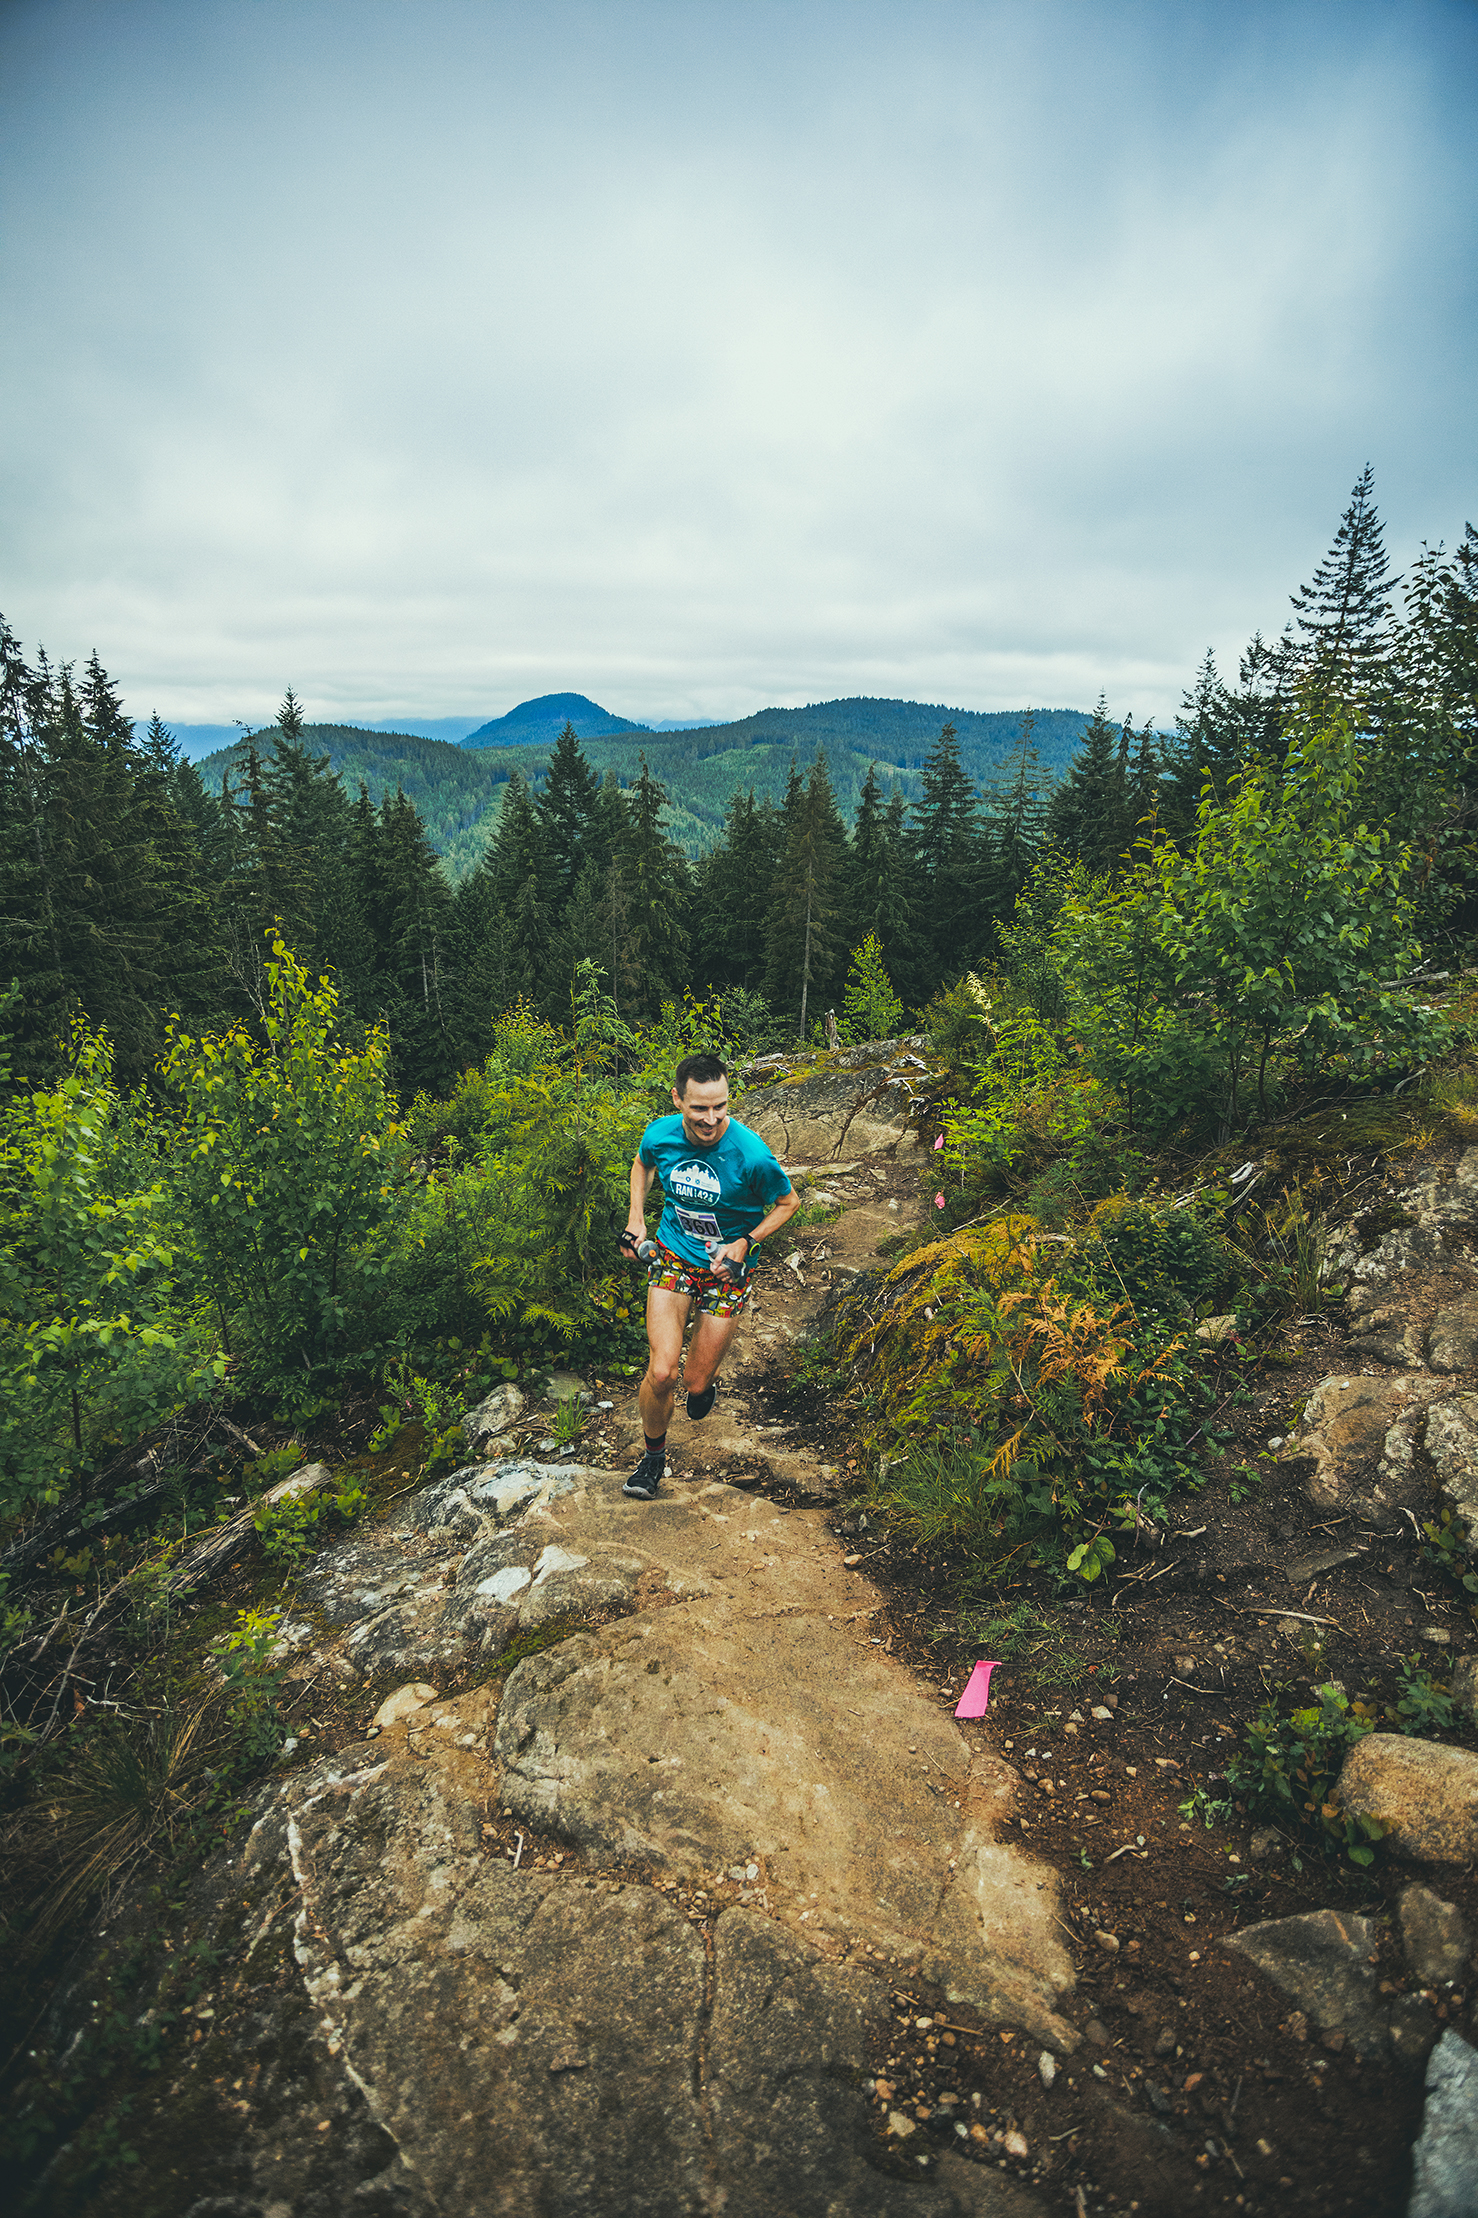 Fraser Valley Trail Races - Bear Mountain - IMG_1398 by Brice Ferre Studio - Vancouver Portrait Adventure and Athlete Photographer.jpg